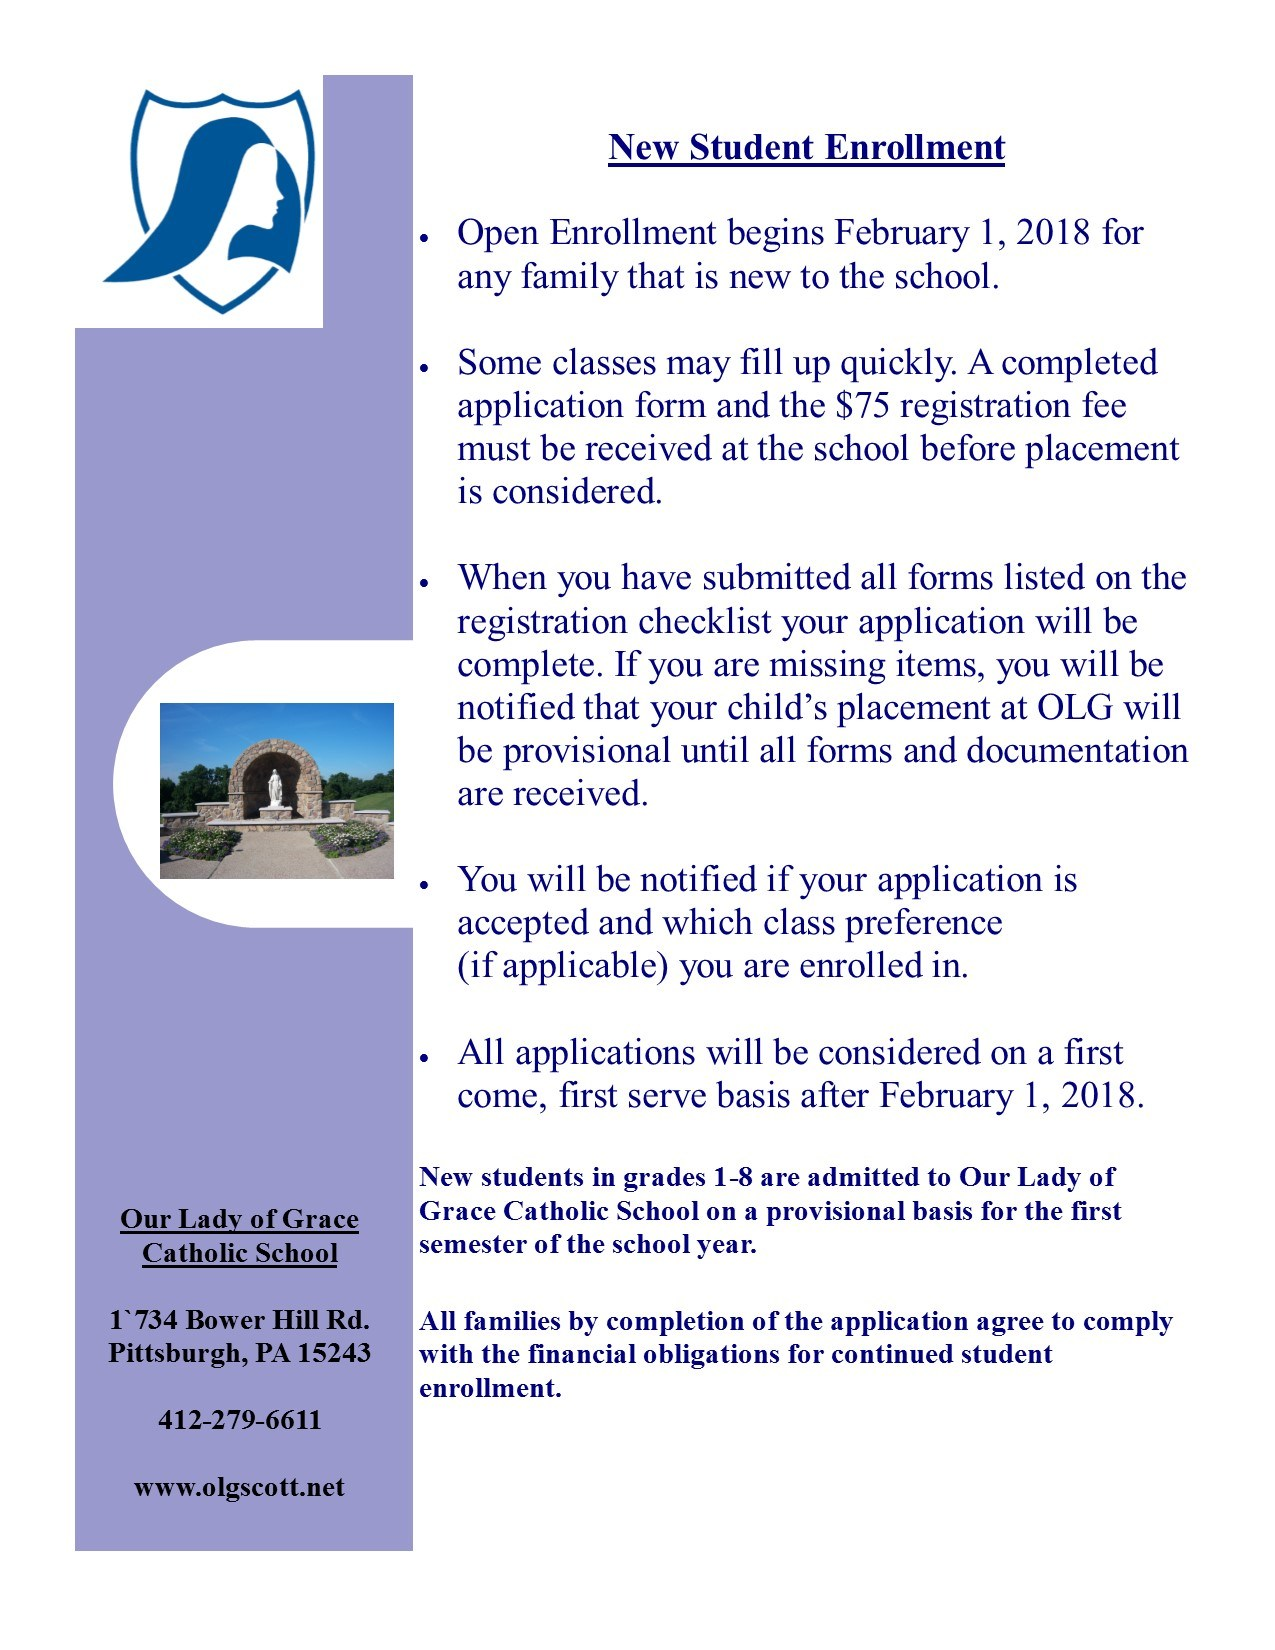 Learn More About Olg Admissions Our Lady Of Grace Catholic School